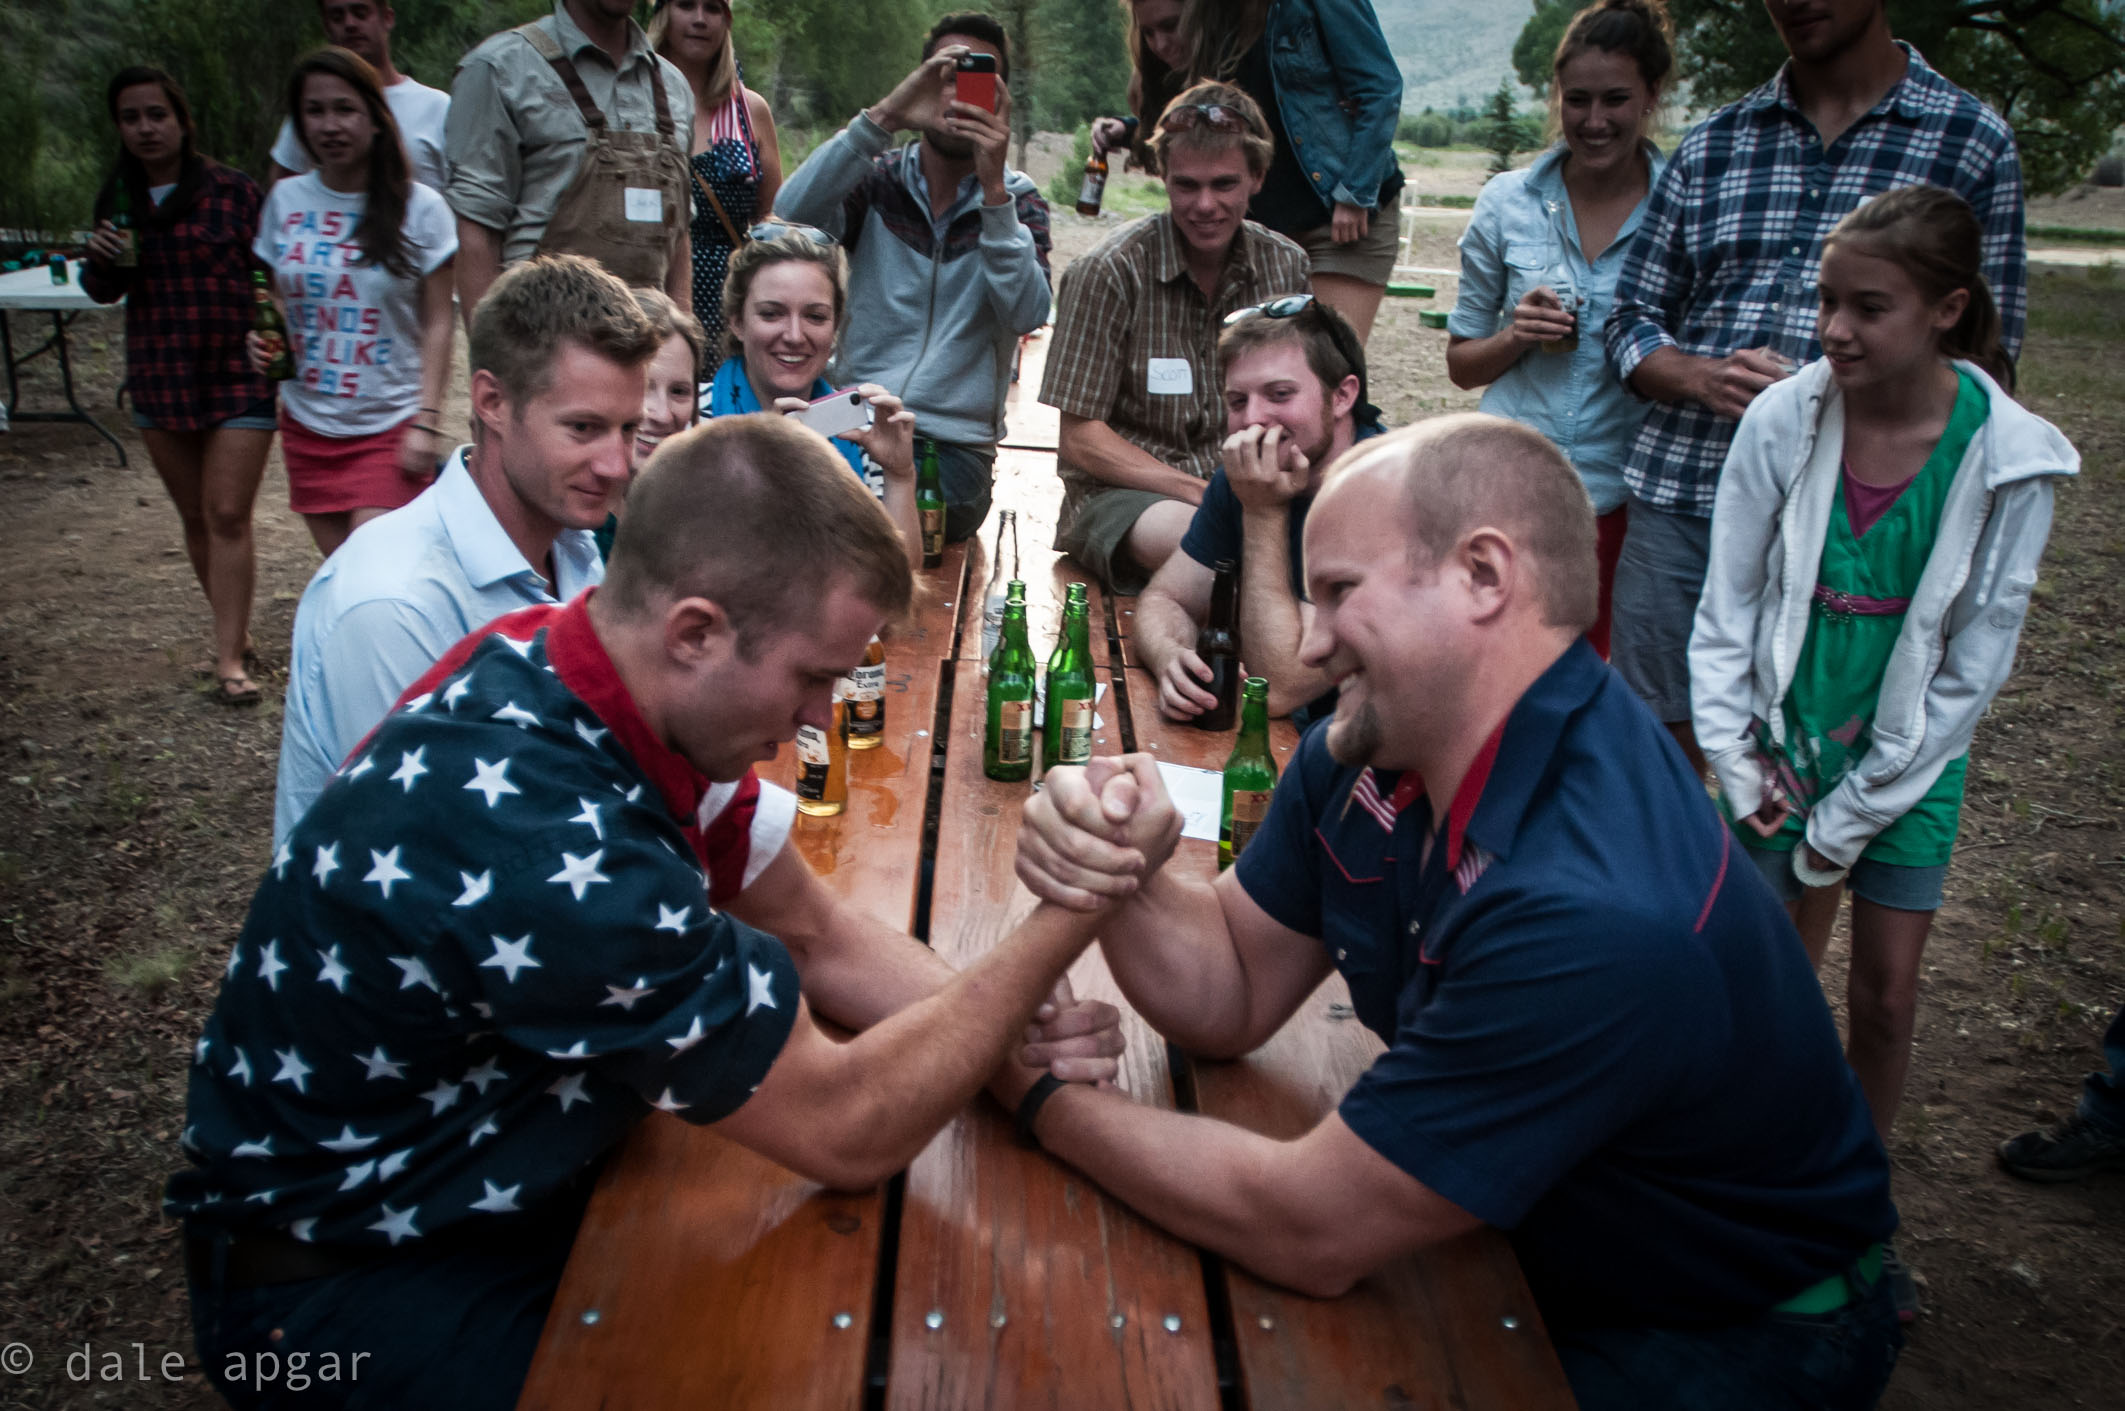 Beers and arm wrestling...'Merica